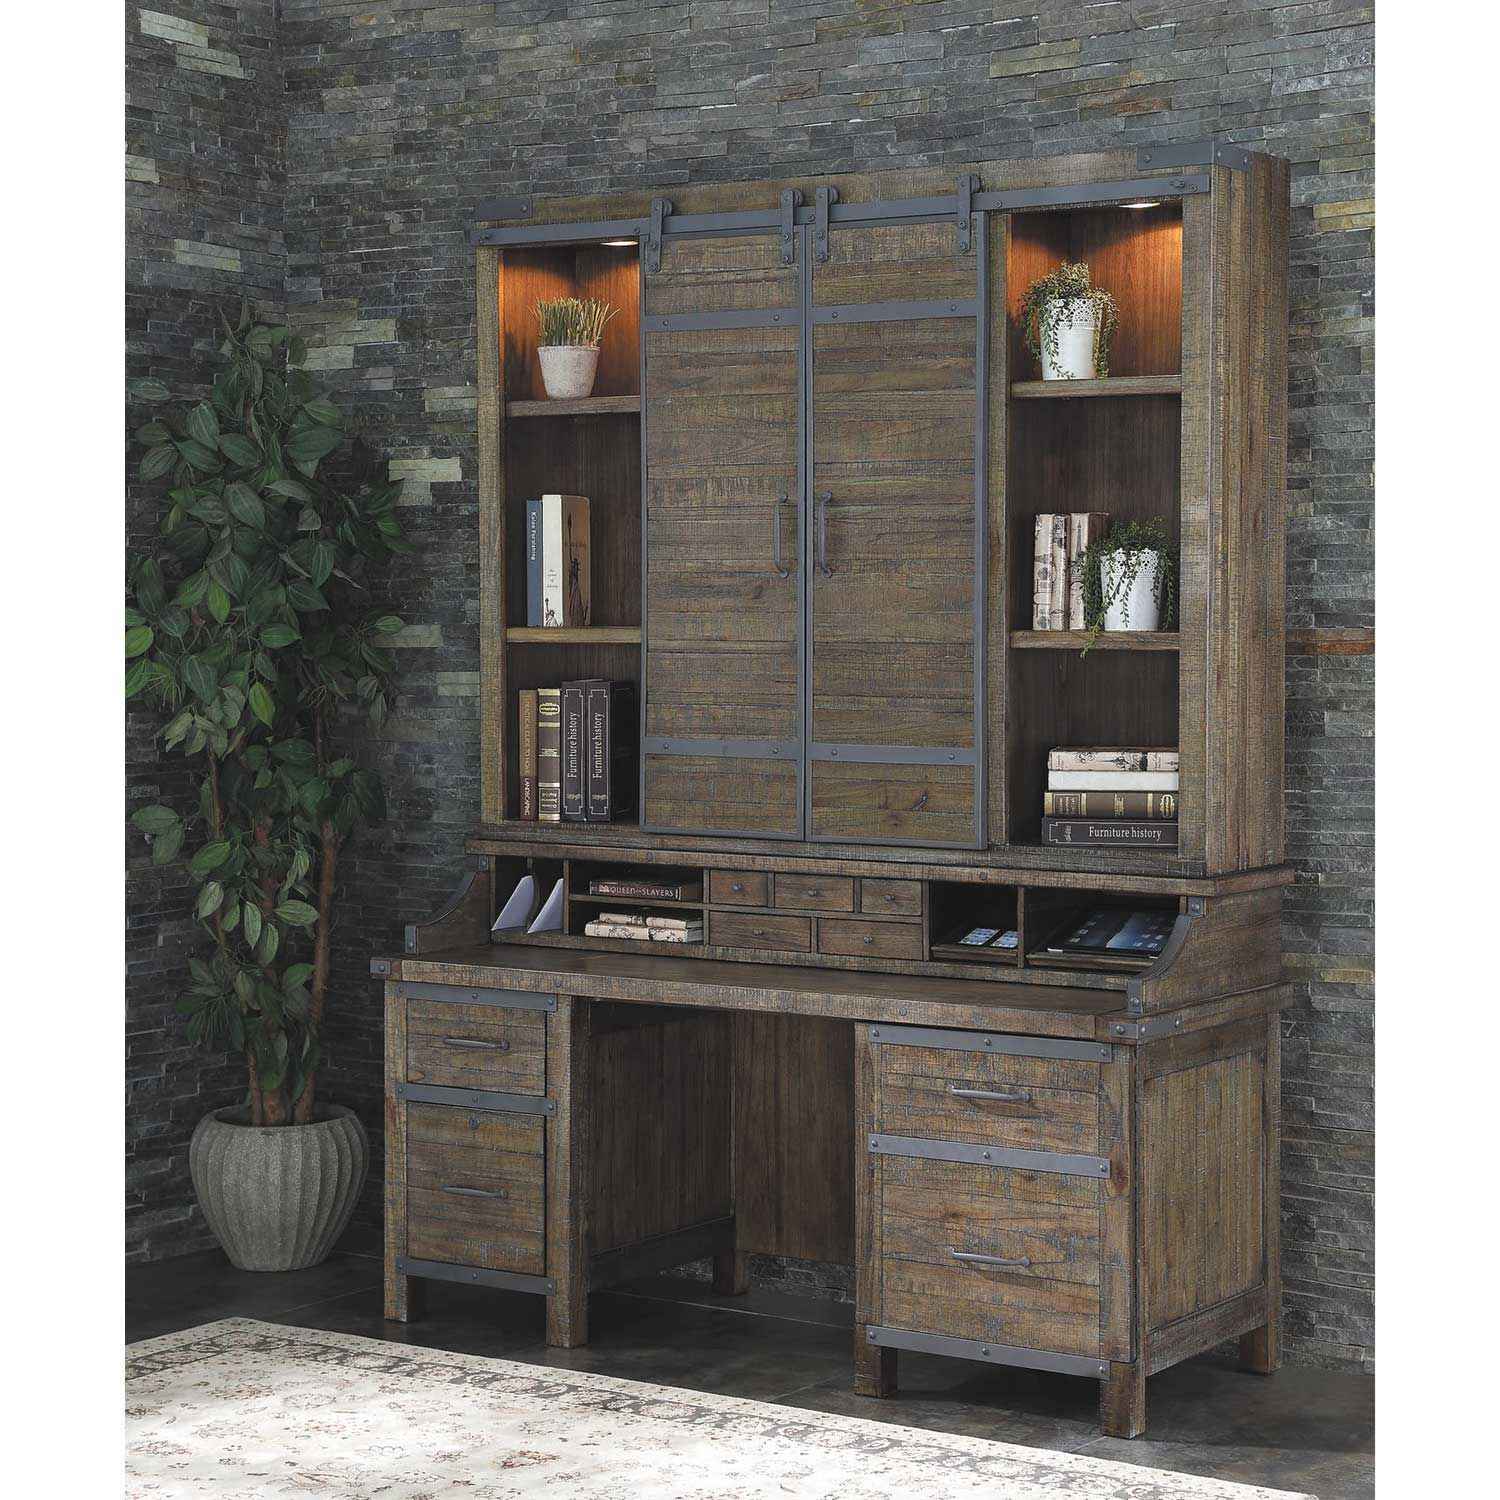 Artisan Revival Smart Top Credenza With Hutch